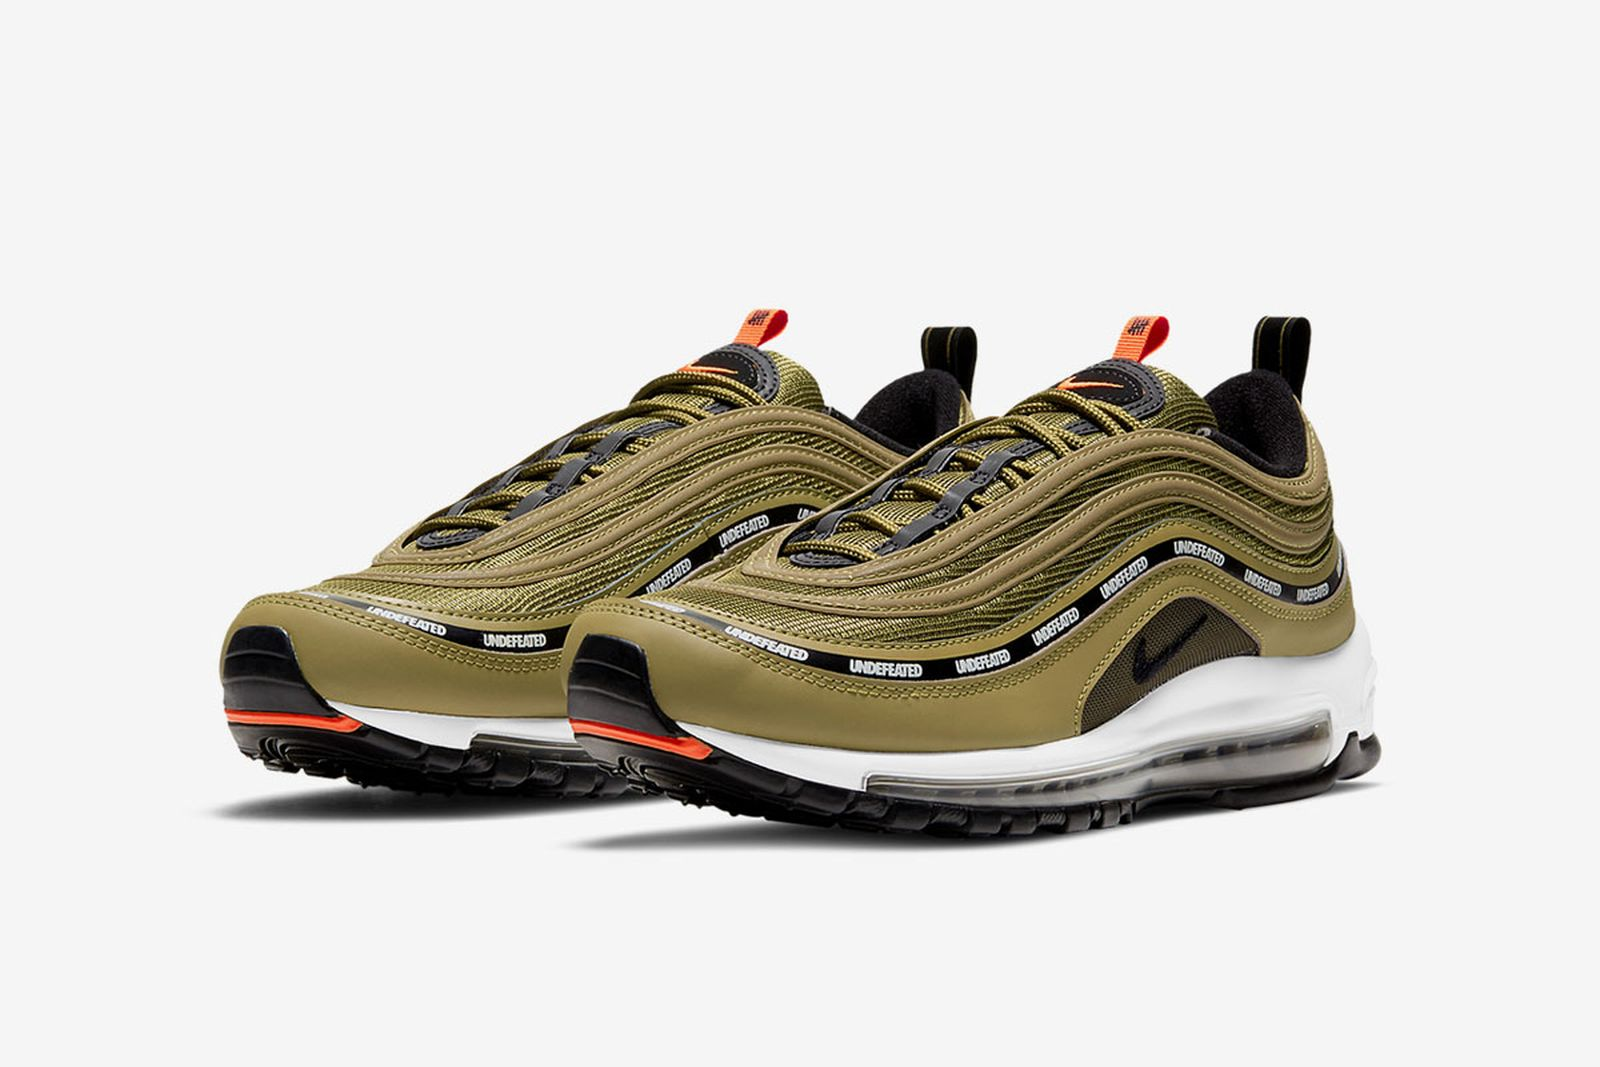 undefeated-nike-air-max-97-release-date-price-03